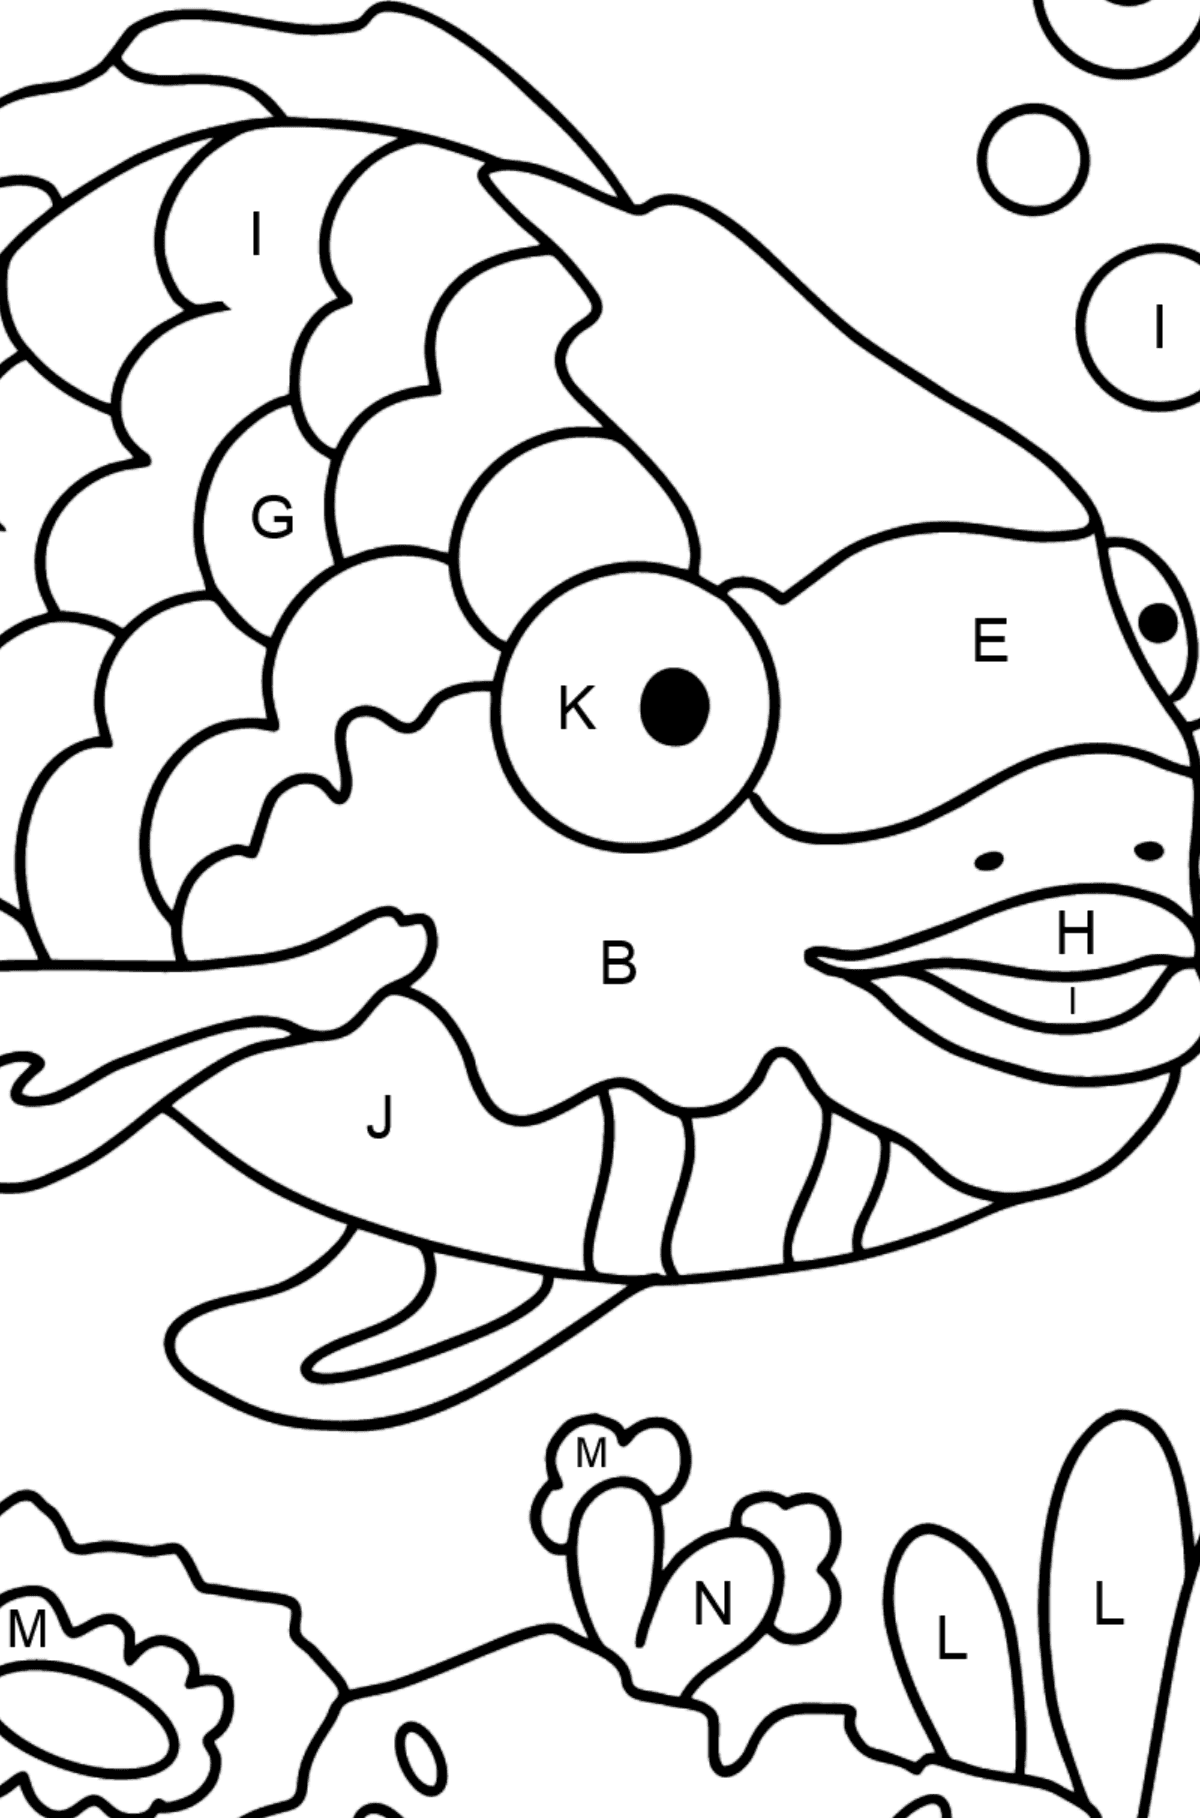 Coloring Page - A Fish with Beautiful Scales - Coloring by Letters for Kids